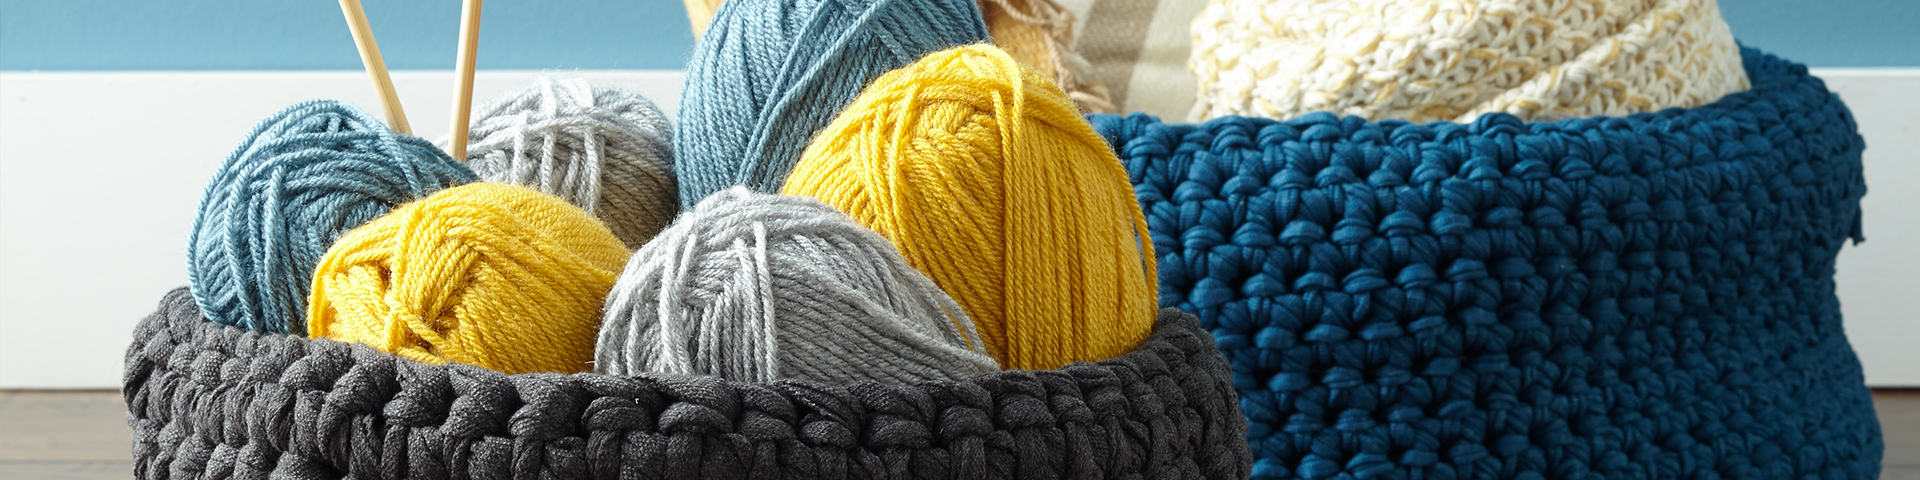 yarn and needles in crocheted baskets